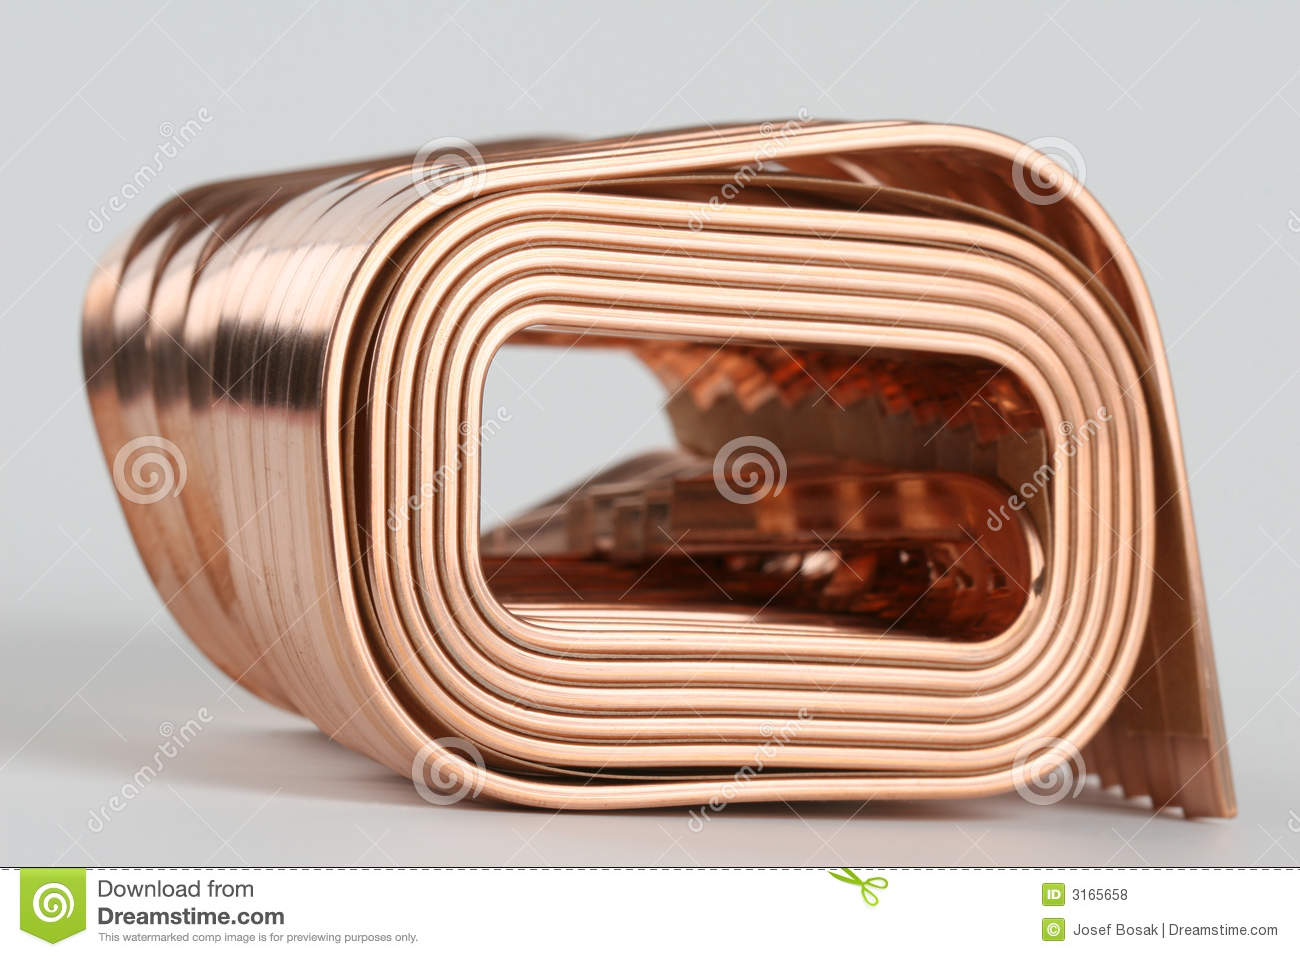 copper wires stock photos - photo #24